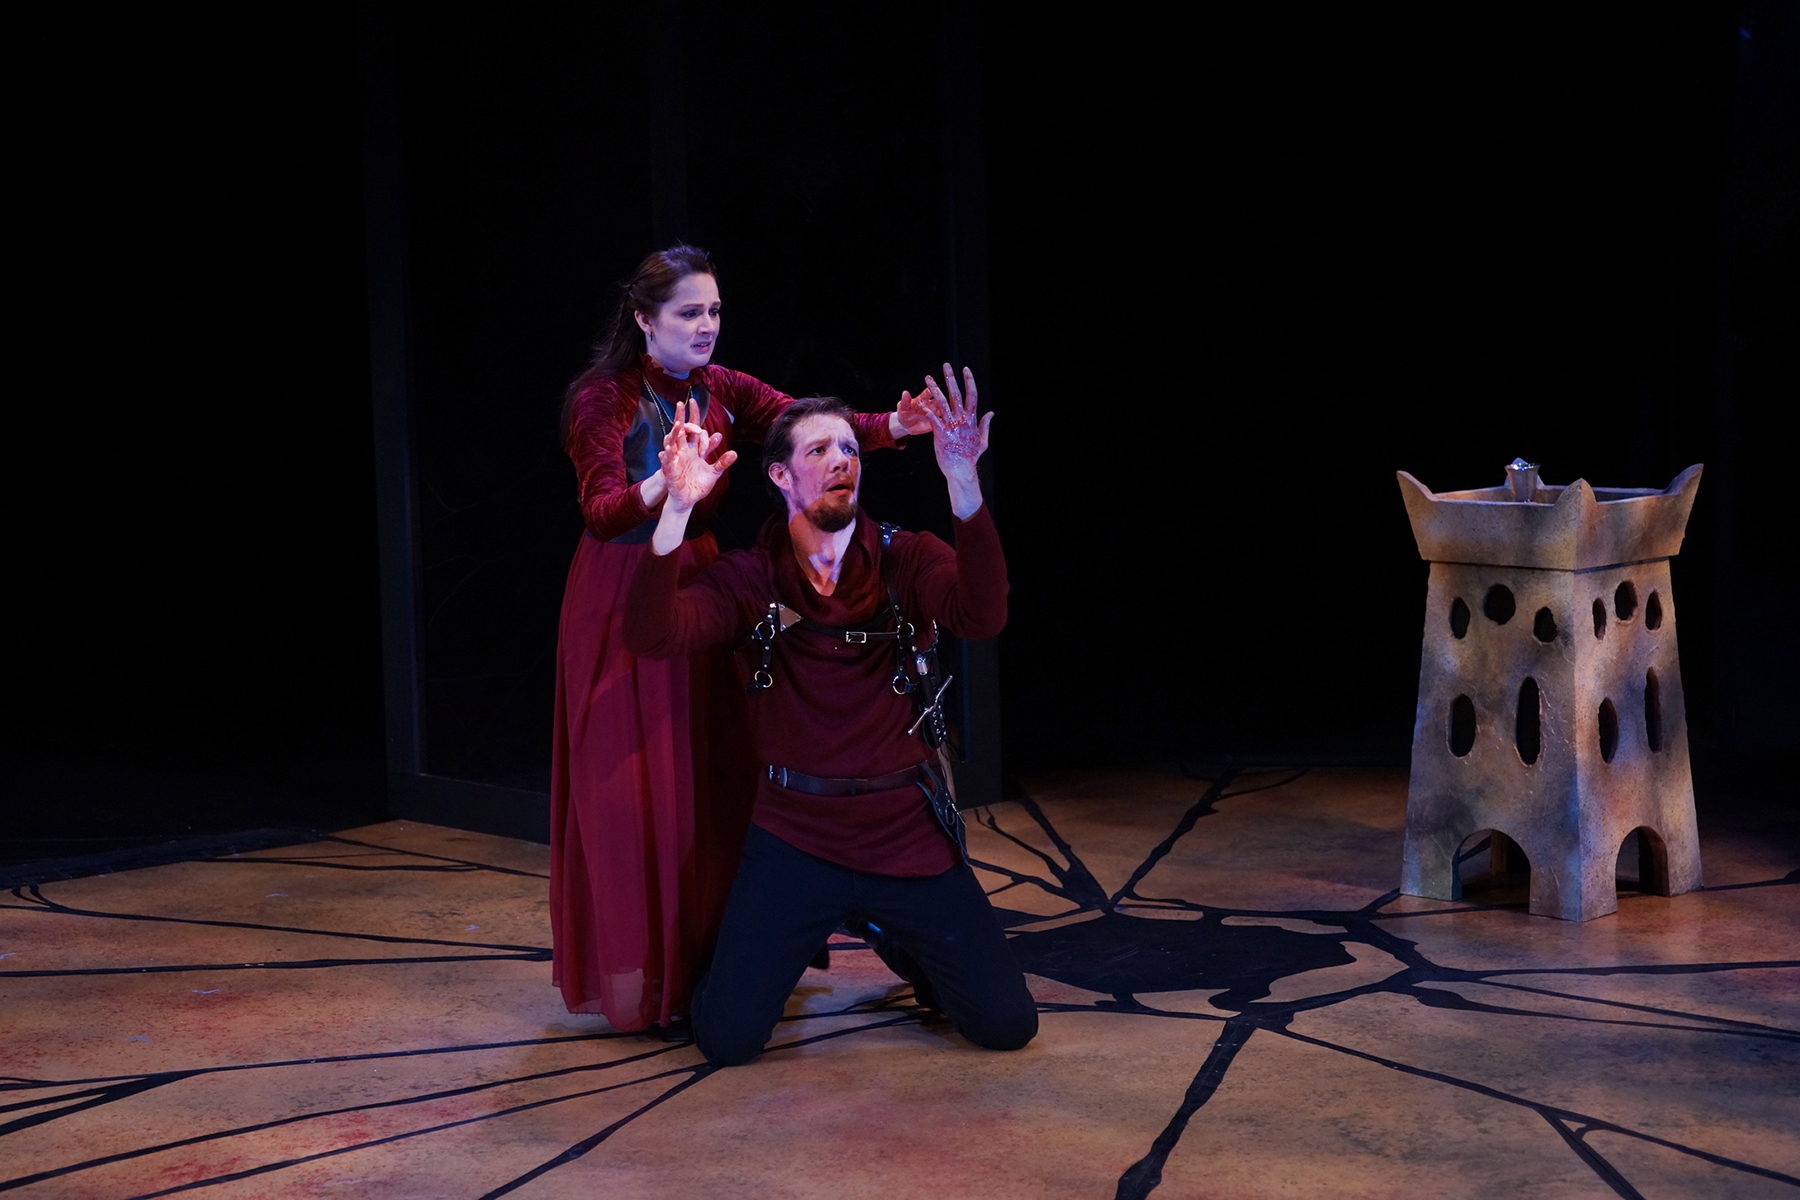 BWW Review: MACBETH at Park Square Theatre